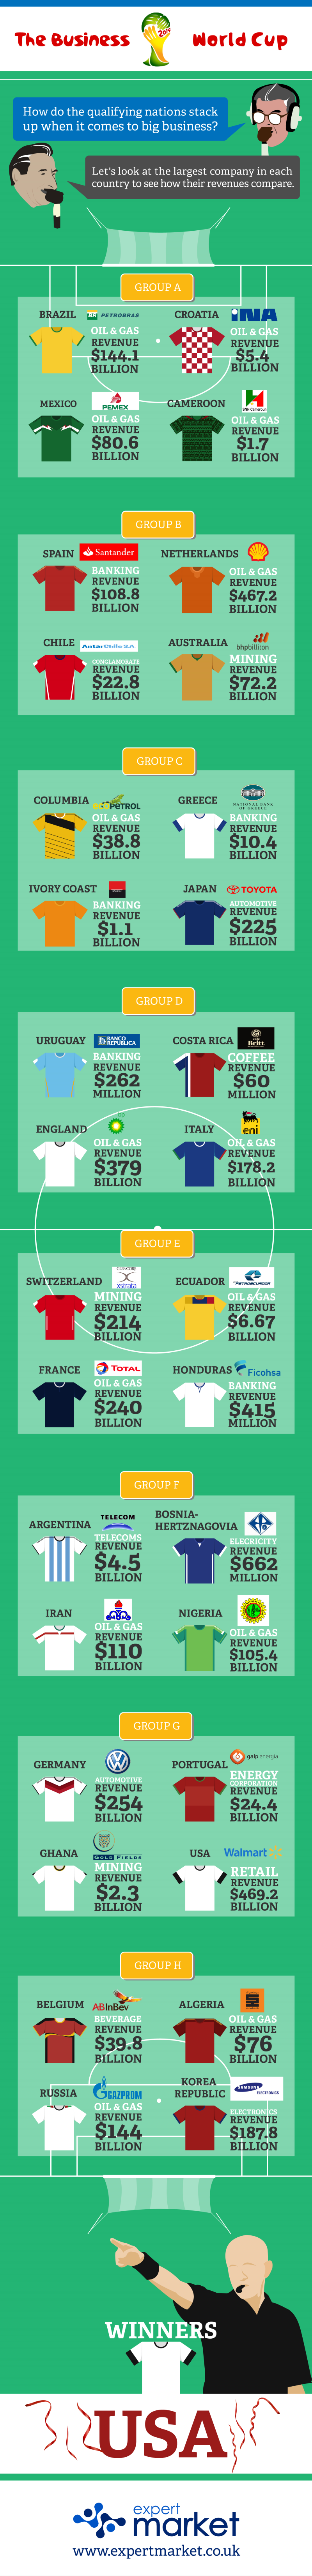 Infographic: The Business World Cup 2014 #infographic